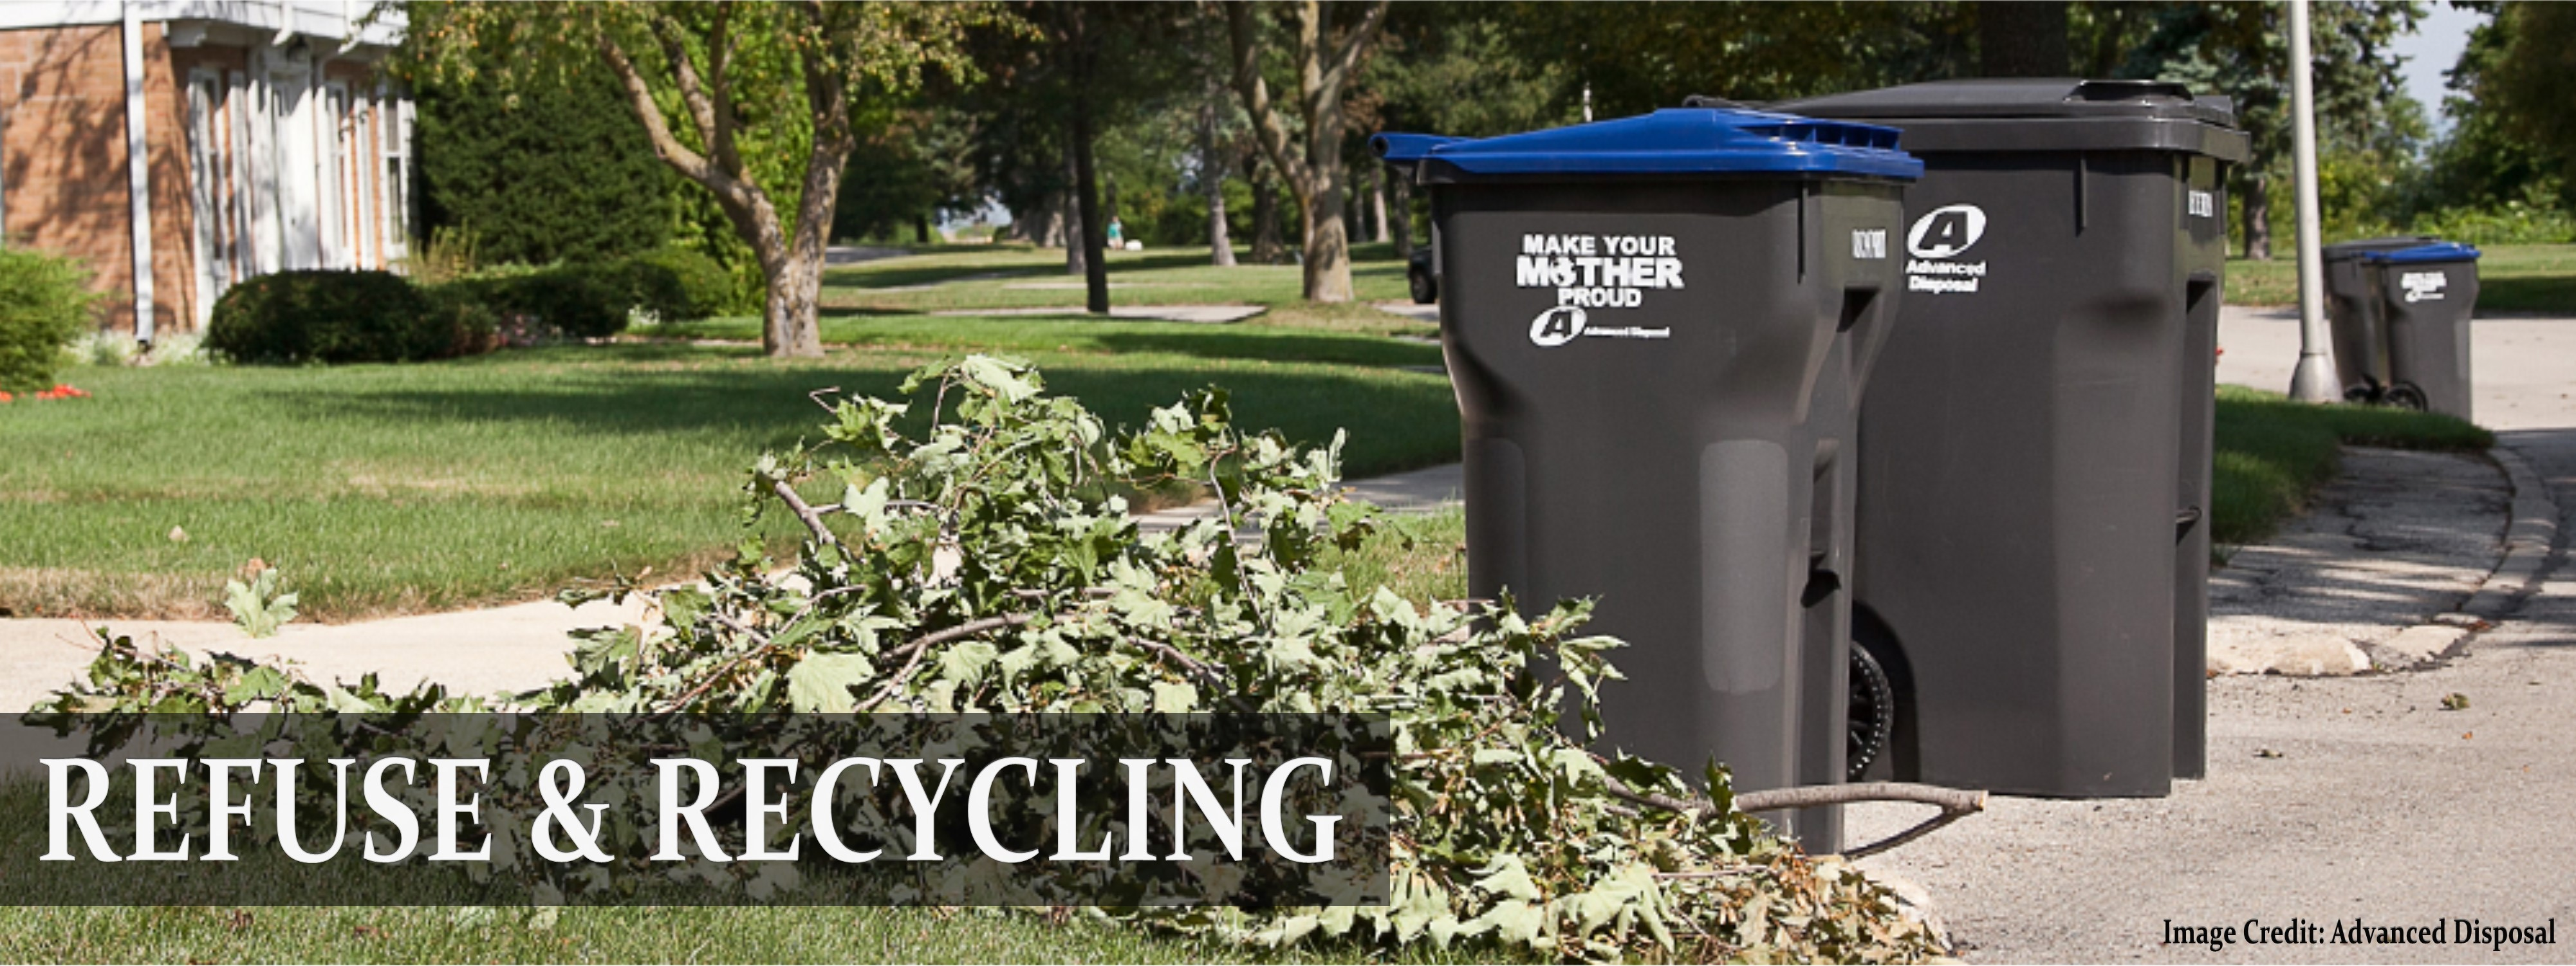 REFUSE AND RECYCLING